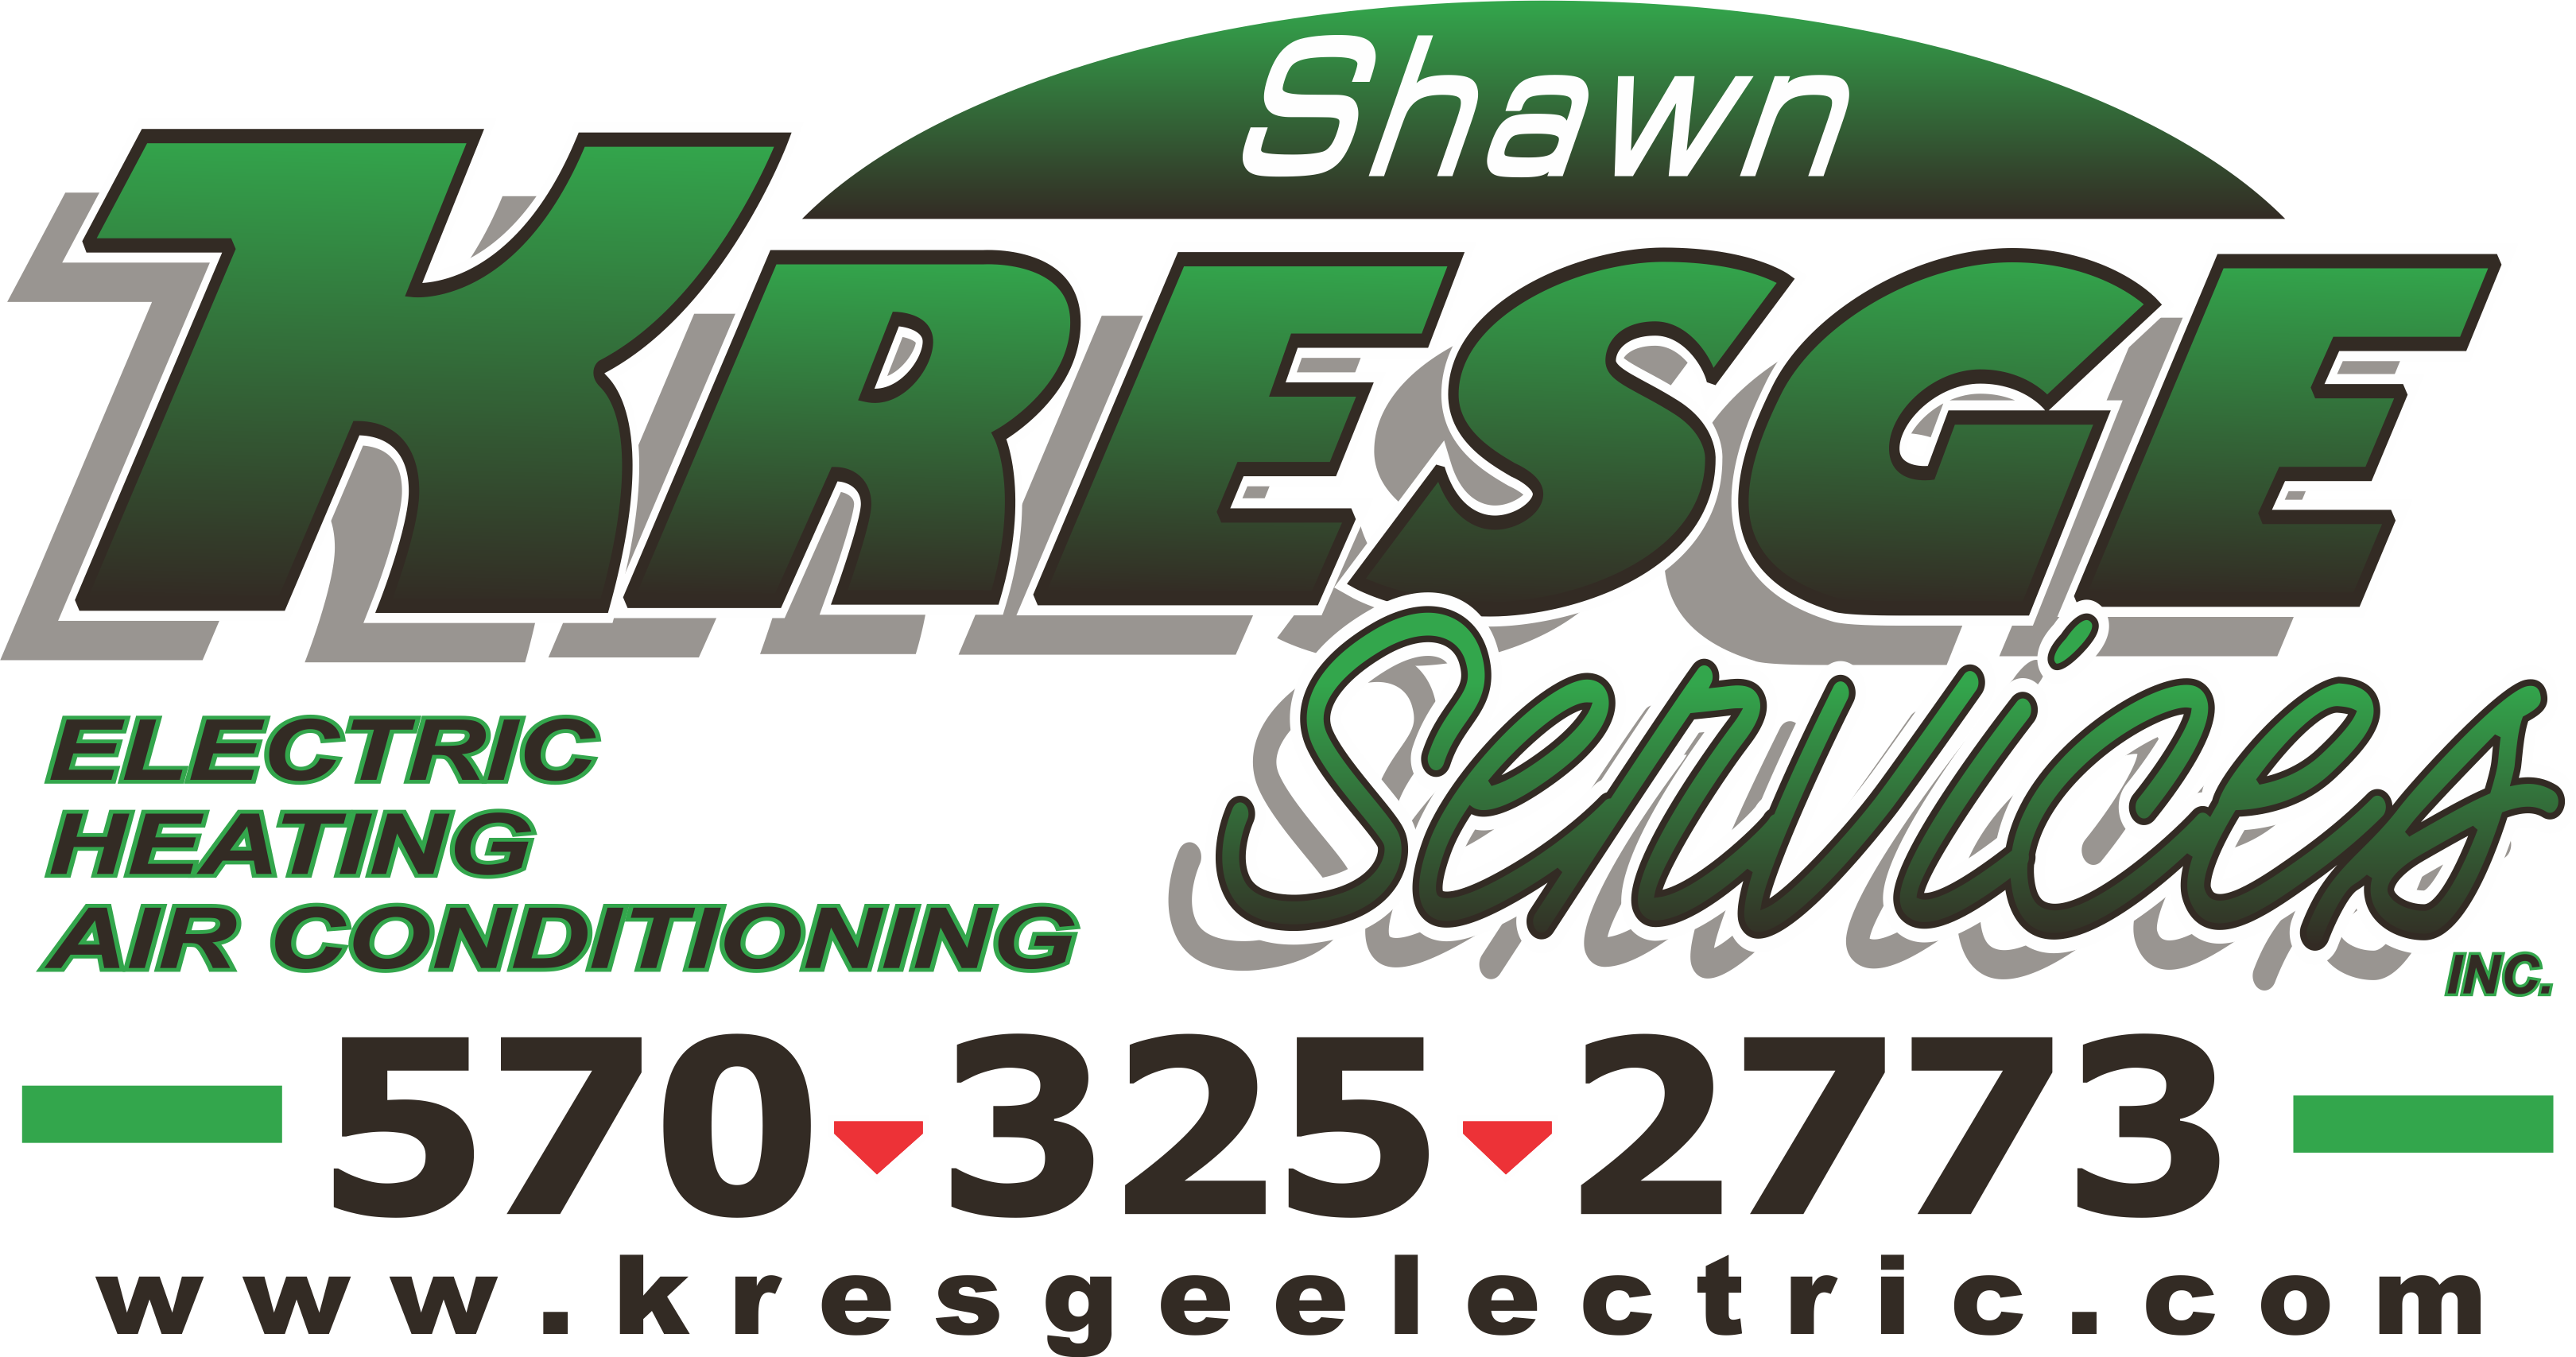 Call Shawn Kresge Electric, Heating & AC for reliable AC repair in Jim Thorpe PA